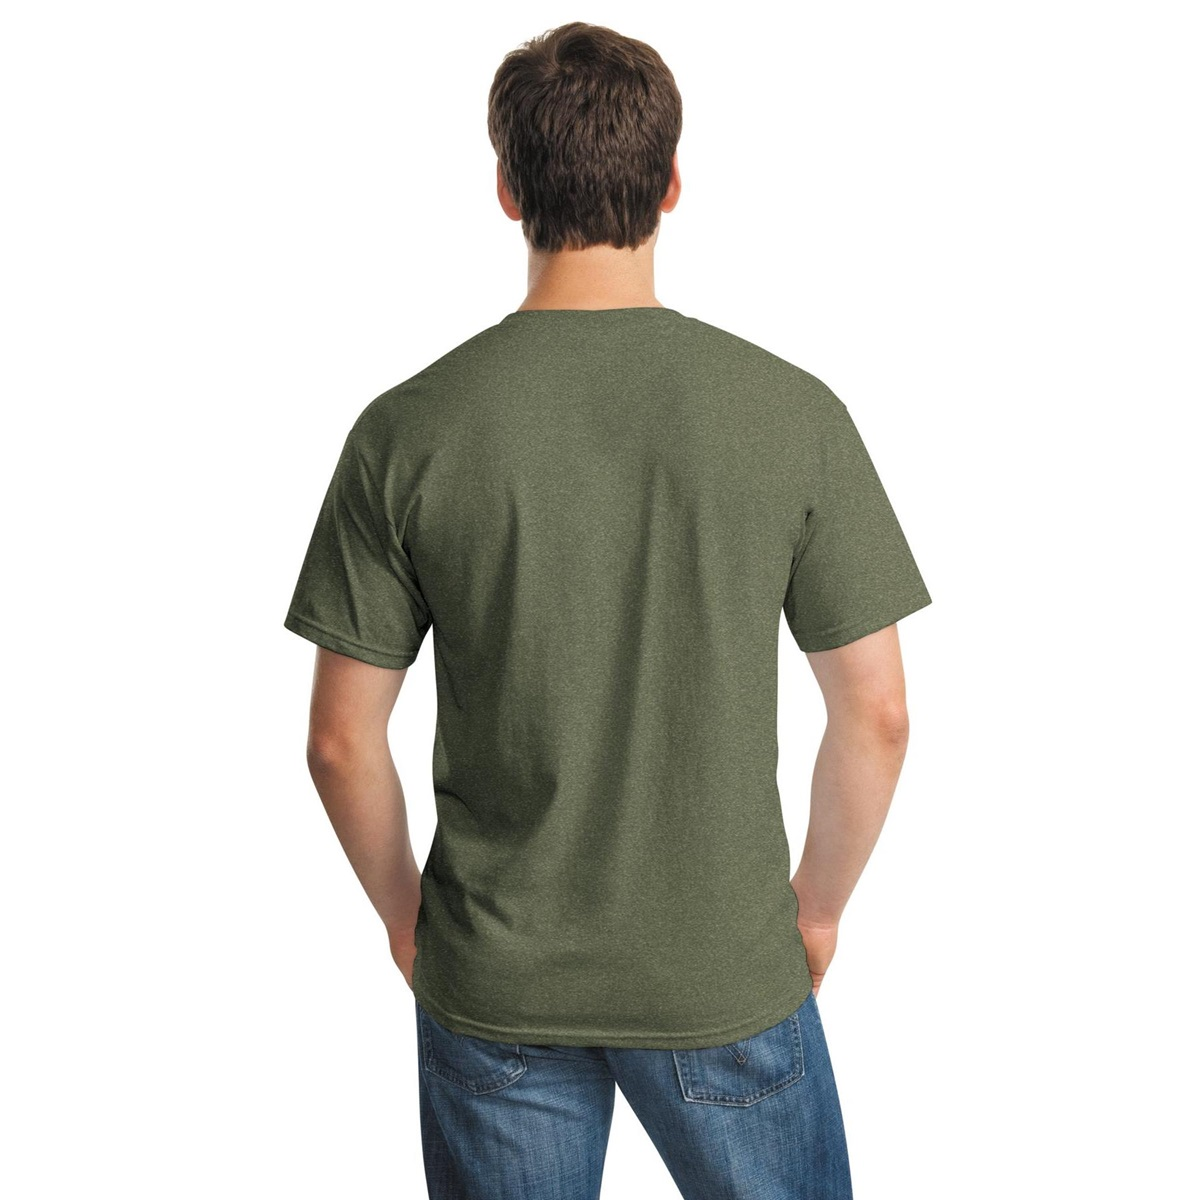 Gildan 5000 heavy cotton t shirt heather military green for Gildan camouflage t shirts